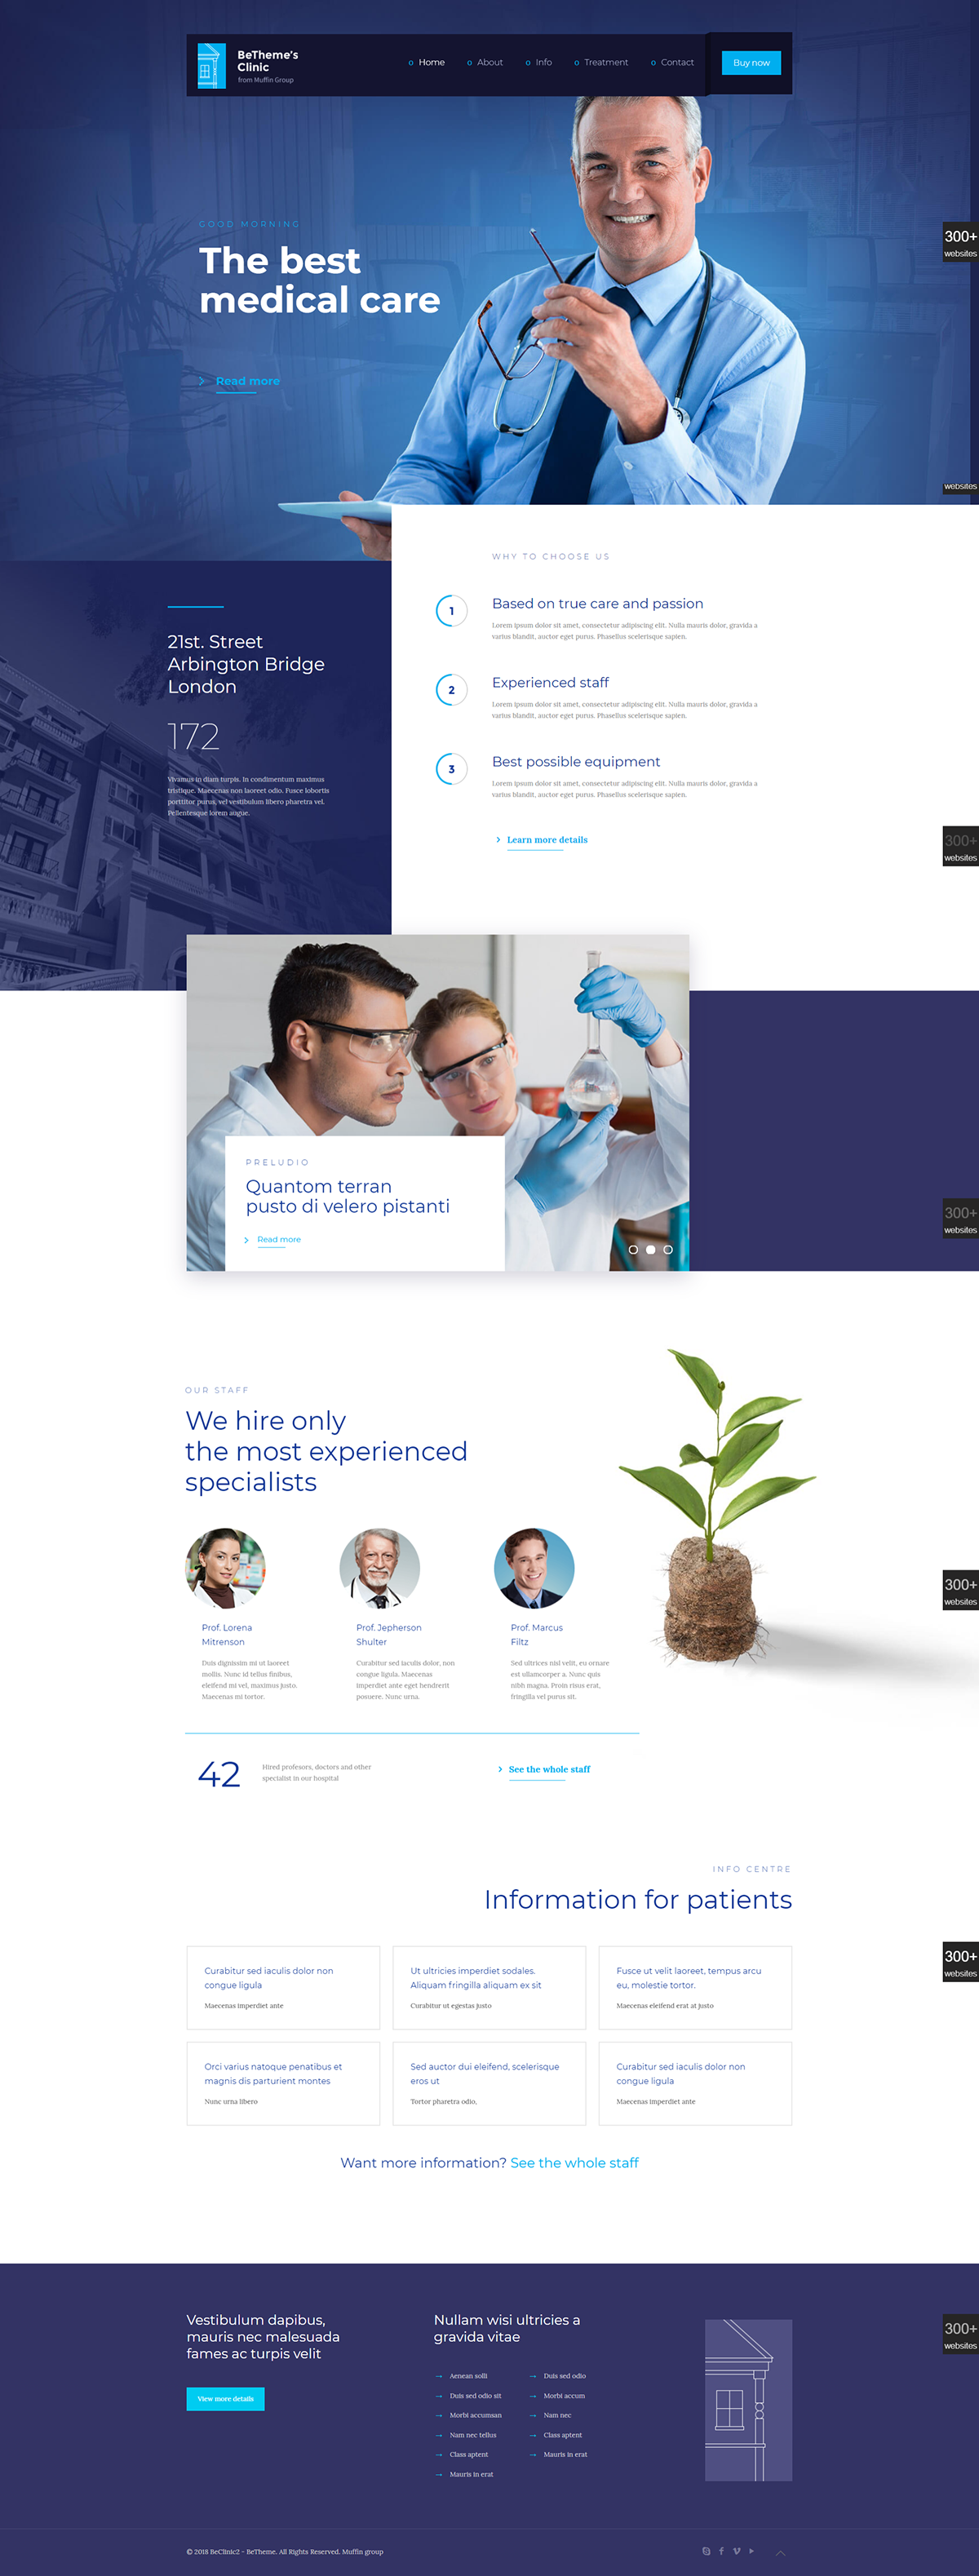 Clinic wordpress business website template design on behance contact me for web development service mehedidityahoo clinic wordpress website friedricerecipe Gallery